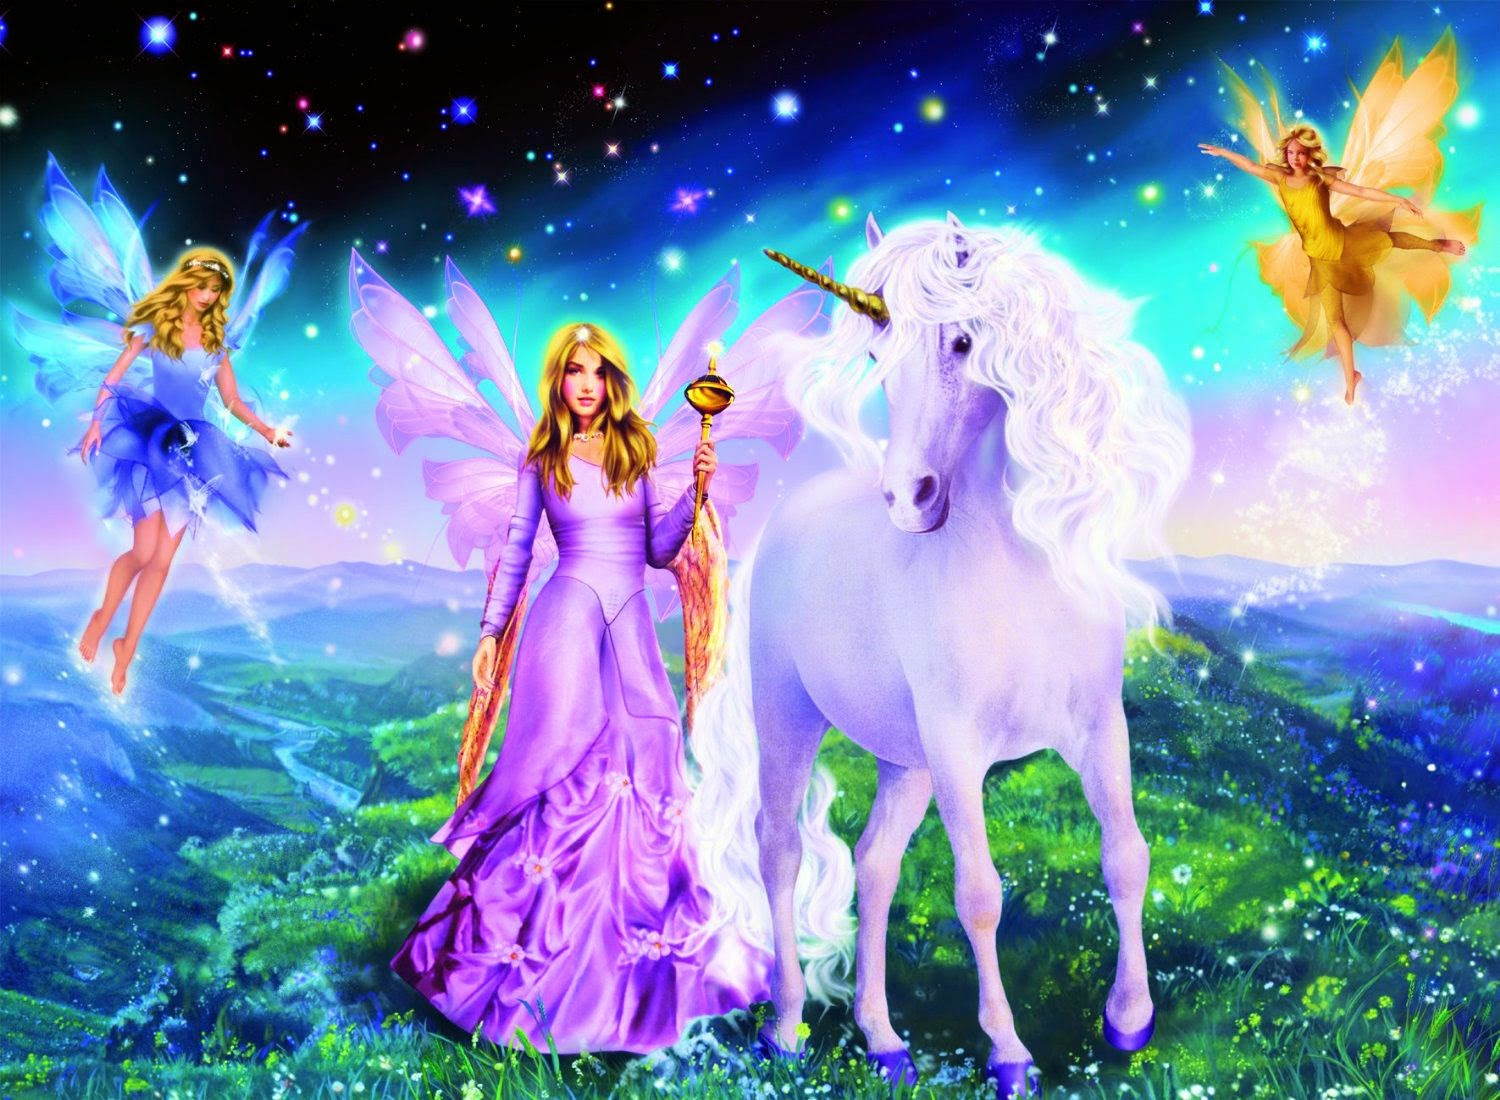 White-Unicorn-with-Fairy-flying-image-1500x1100.jpg